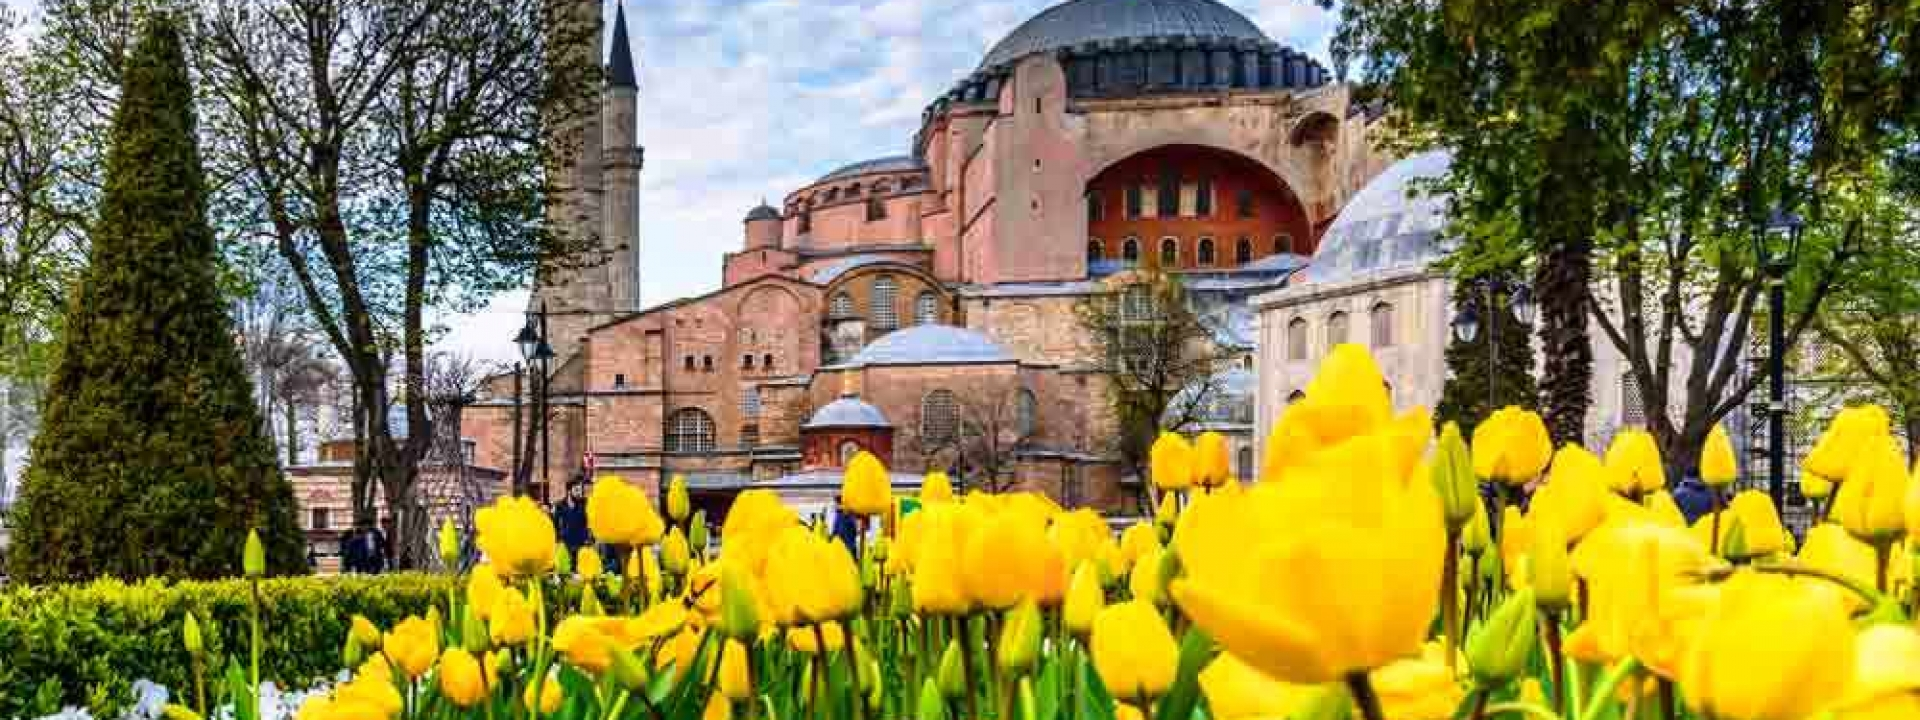 Promo Special Event Turkey Tulip Festival Tour - 10D8N By Qatar Airways